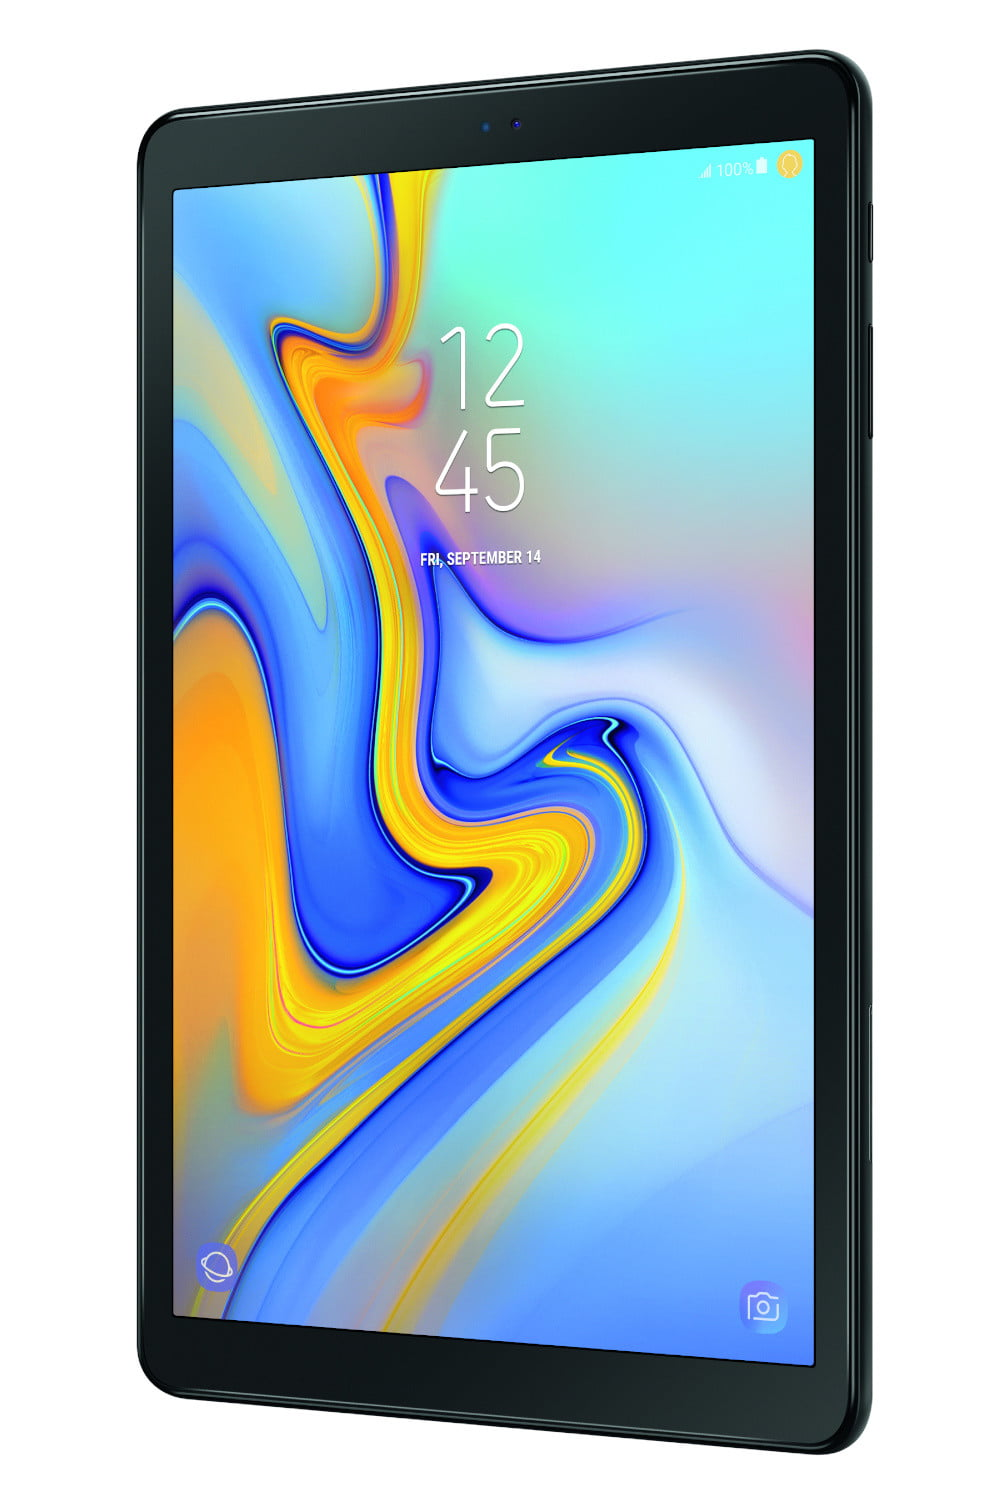 samsung galaxy a6 tab a 10 5 offer great midrange value for money digital trends. Black Bedroom Furniture Sets. Home Design Ideas